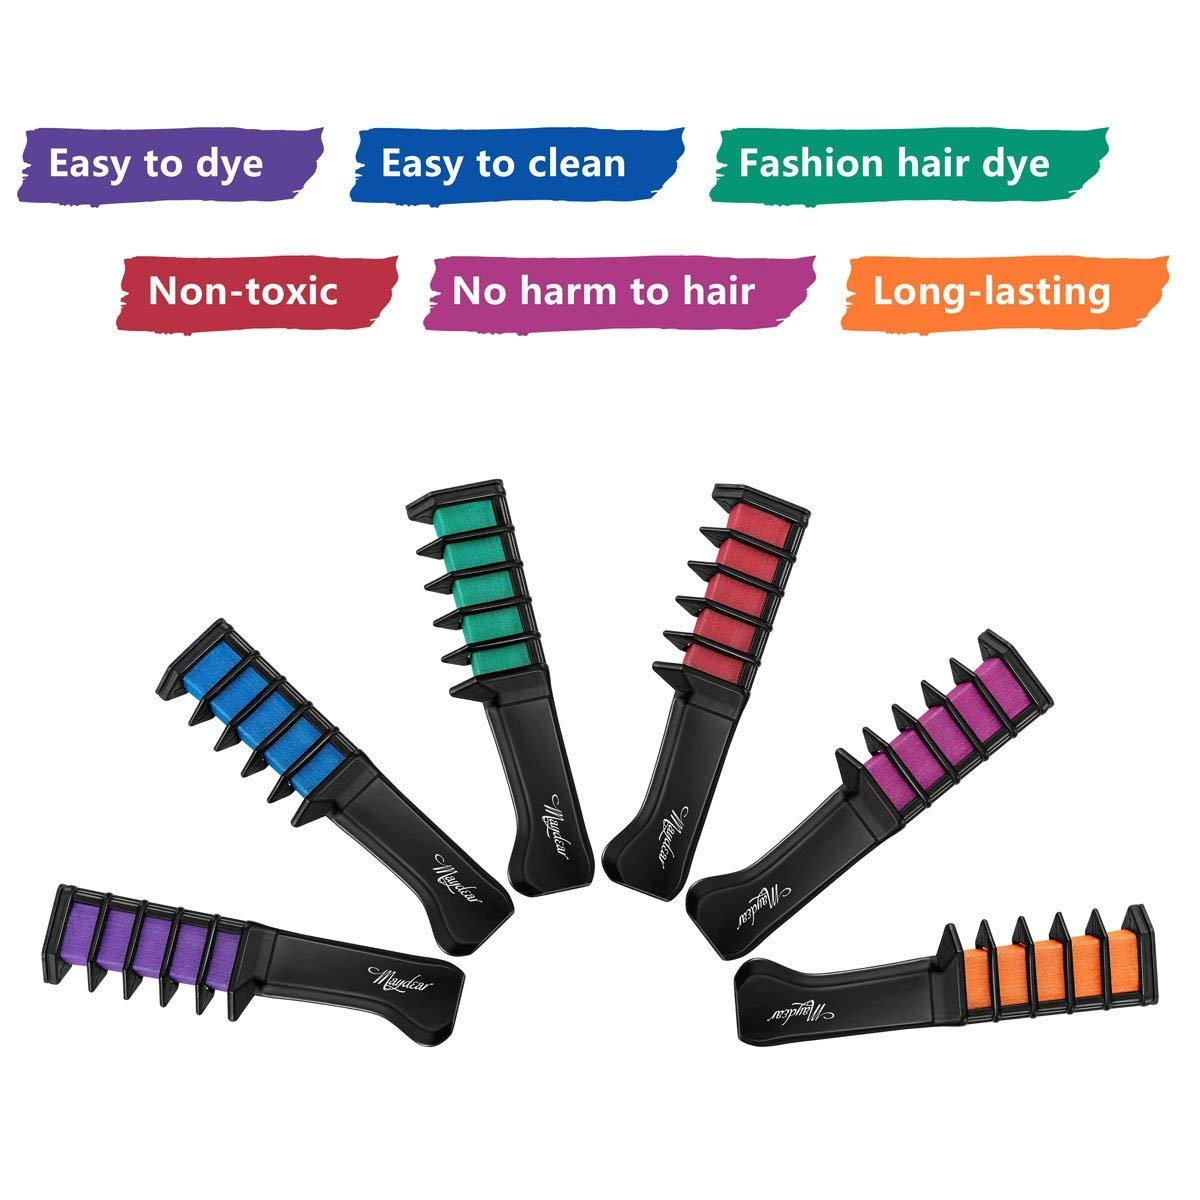 Maydear Temporary Hair Chalk Comb-Non Toxic Washable Hair Color Comb for Hair Dye-Safe for Kids for Party Cosplay DIY (6 Colors) by Maydear (Image #2)